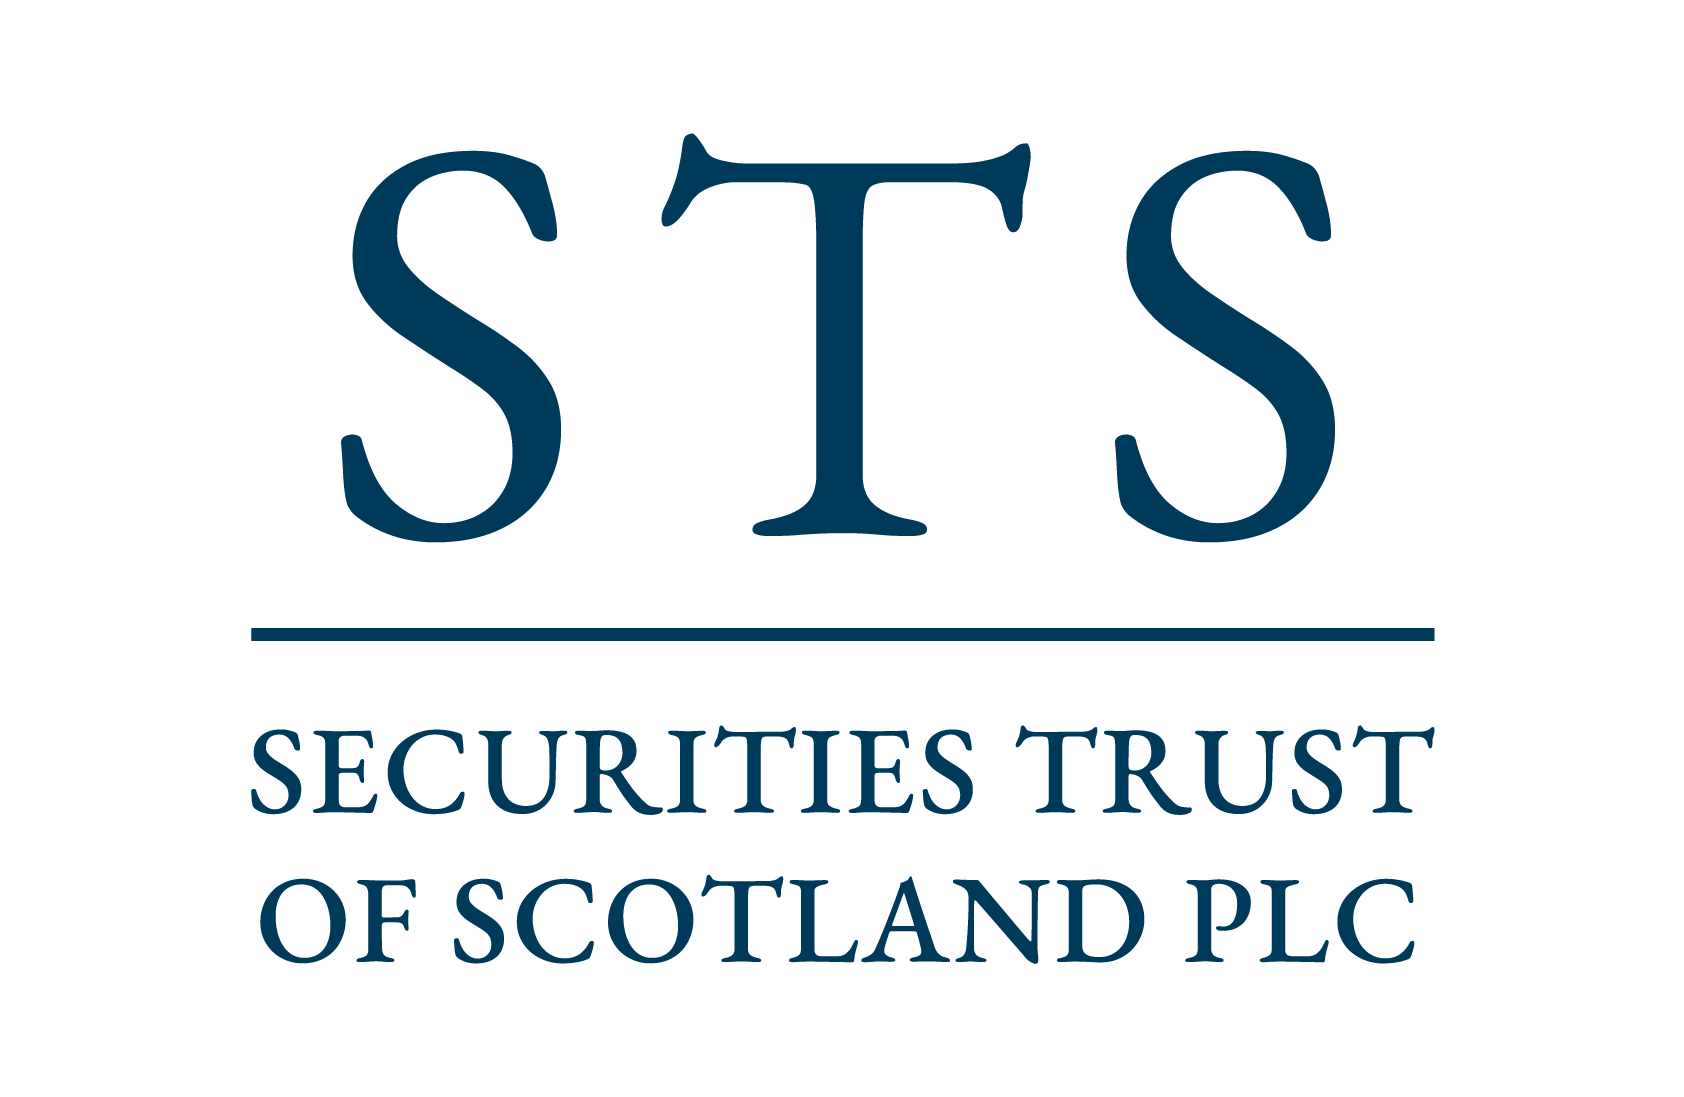 Troy Asset Management appointed Investment Manager of Securities Trust of Scotland plc